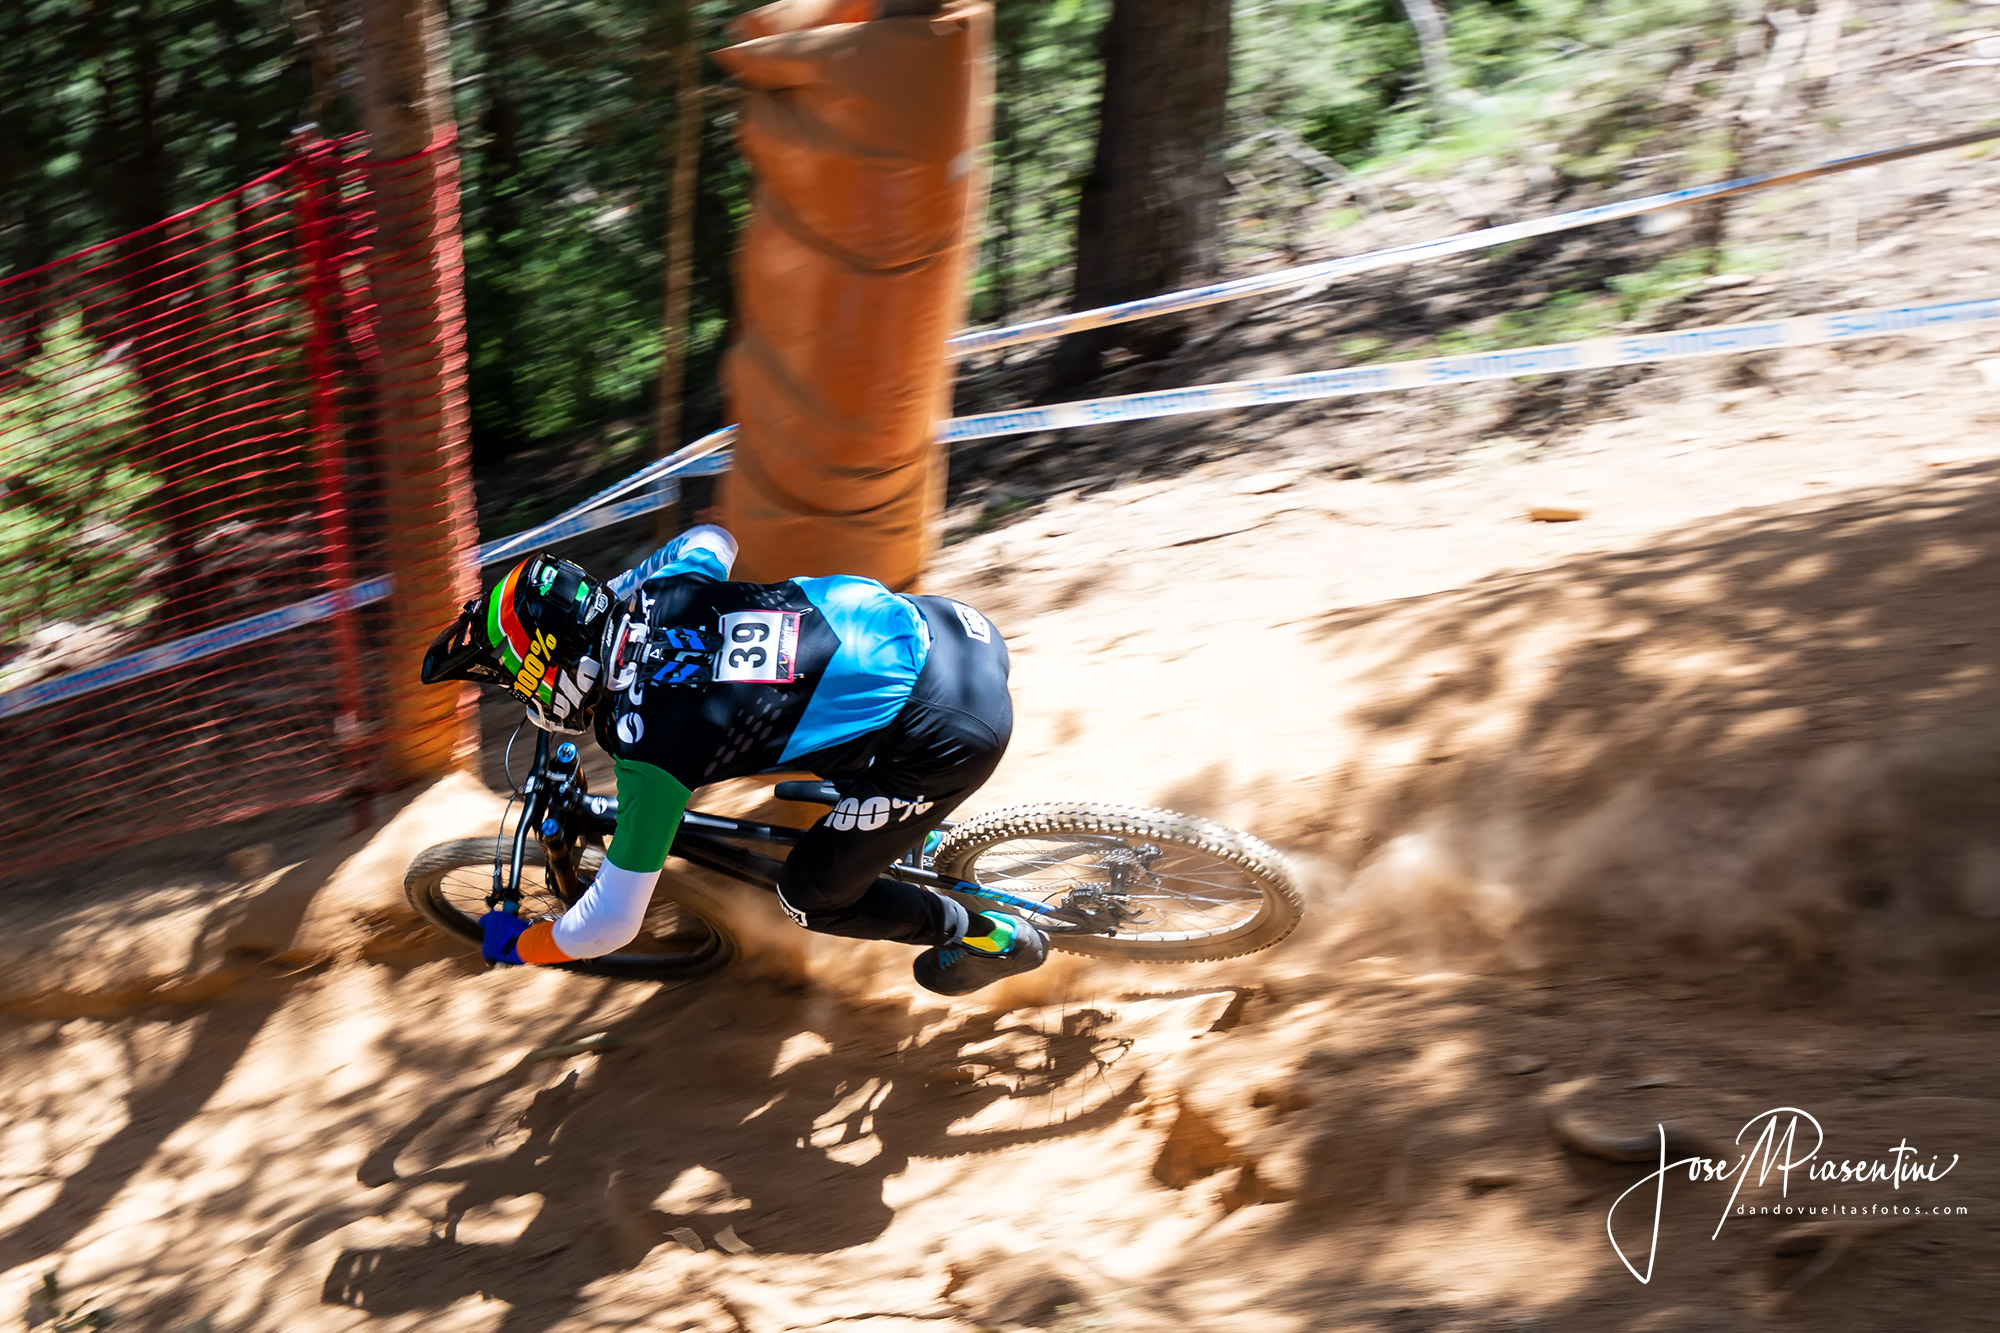 Vallnord-Mountain-bike-world-cup